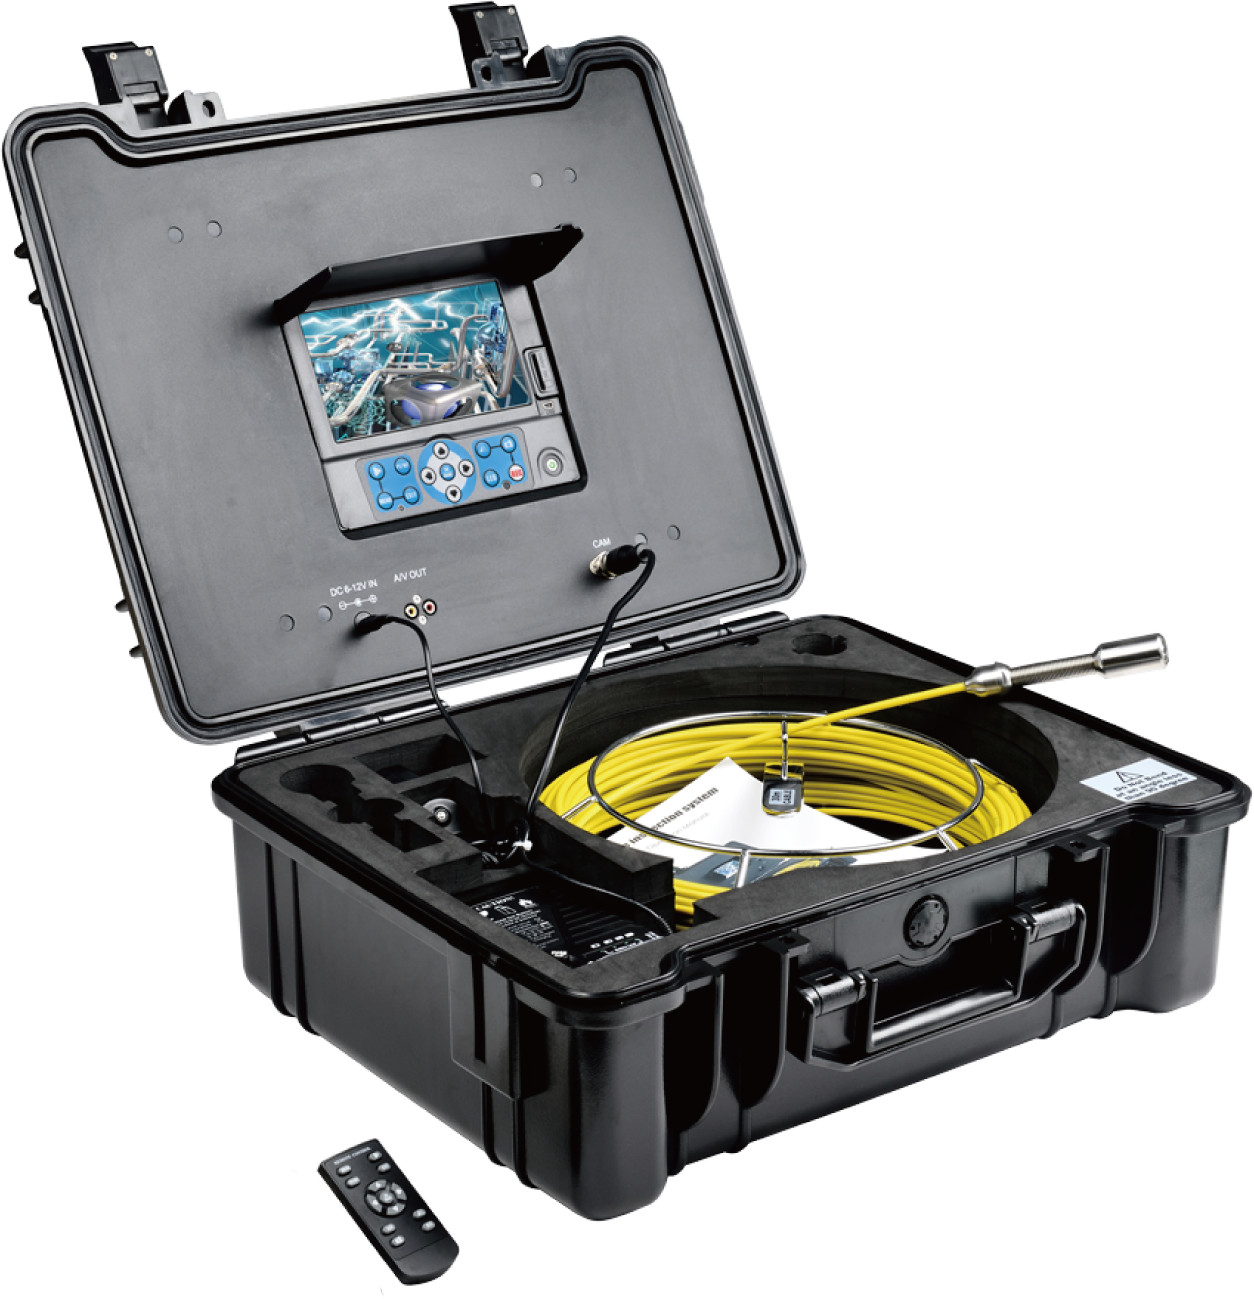 TVBTECH Drain inspection camera for Plumbing detection service